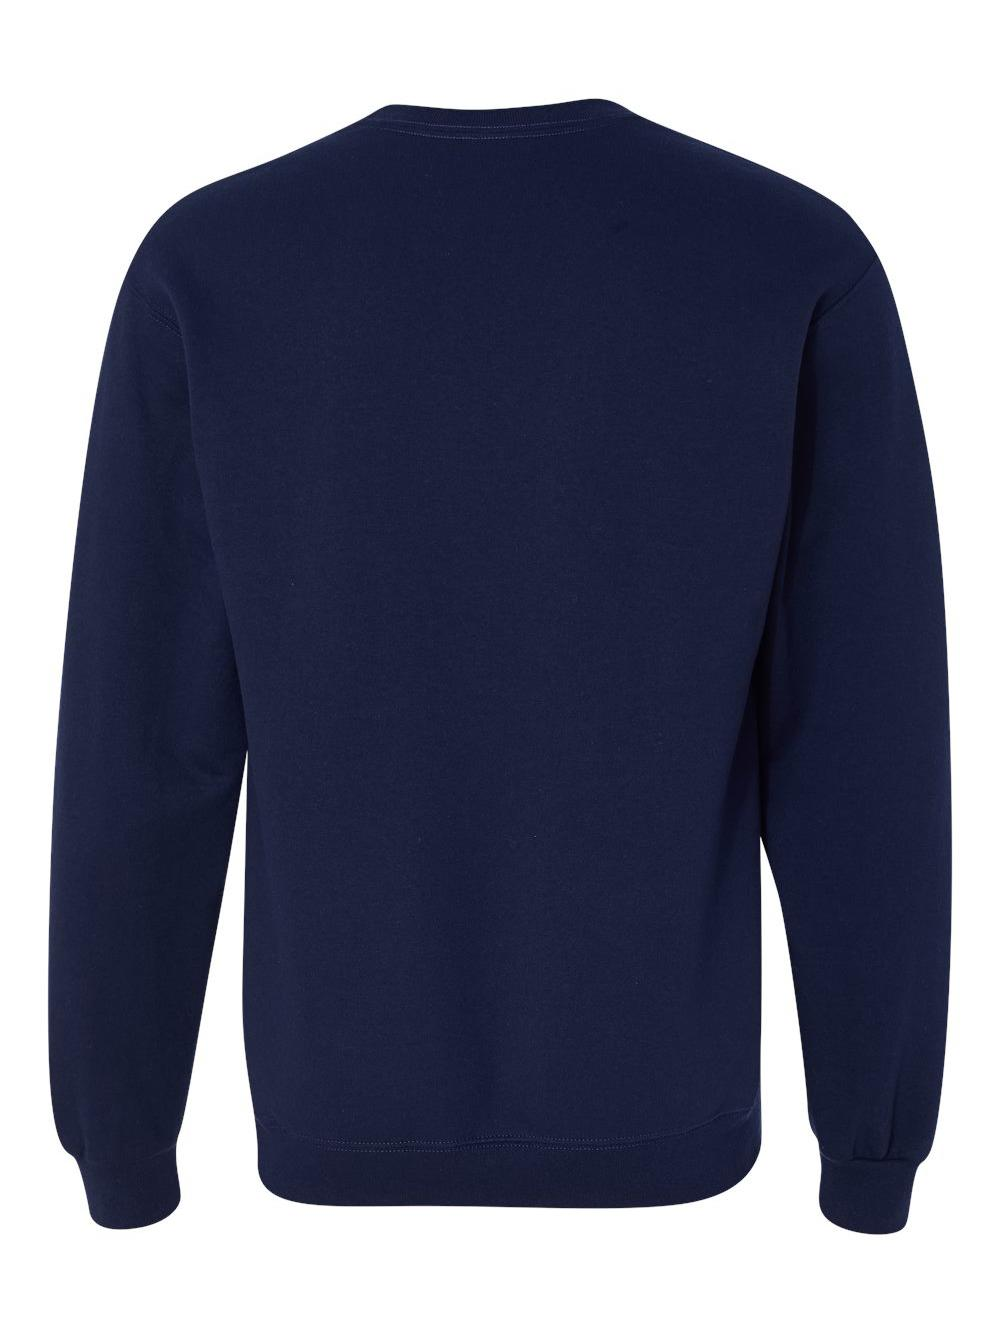 Fruit-of-the-Loom-Sofspun-Crewneck-Sweatshirt-SF72R thumbnail 16